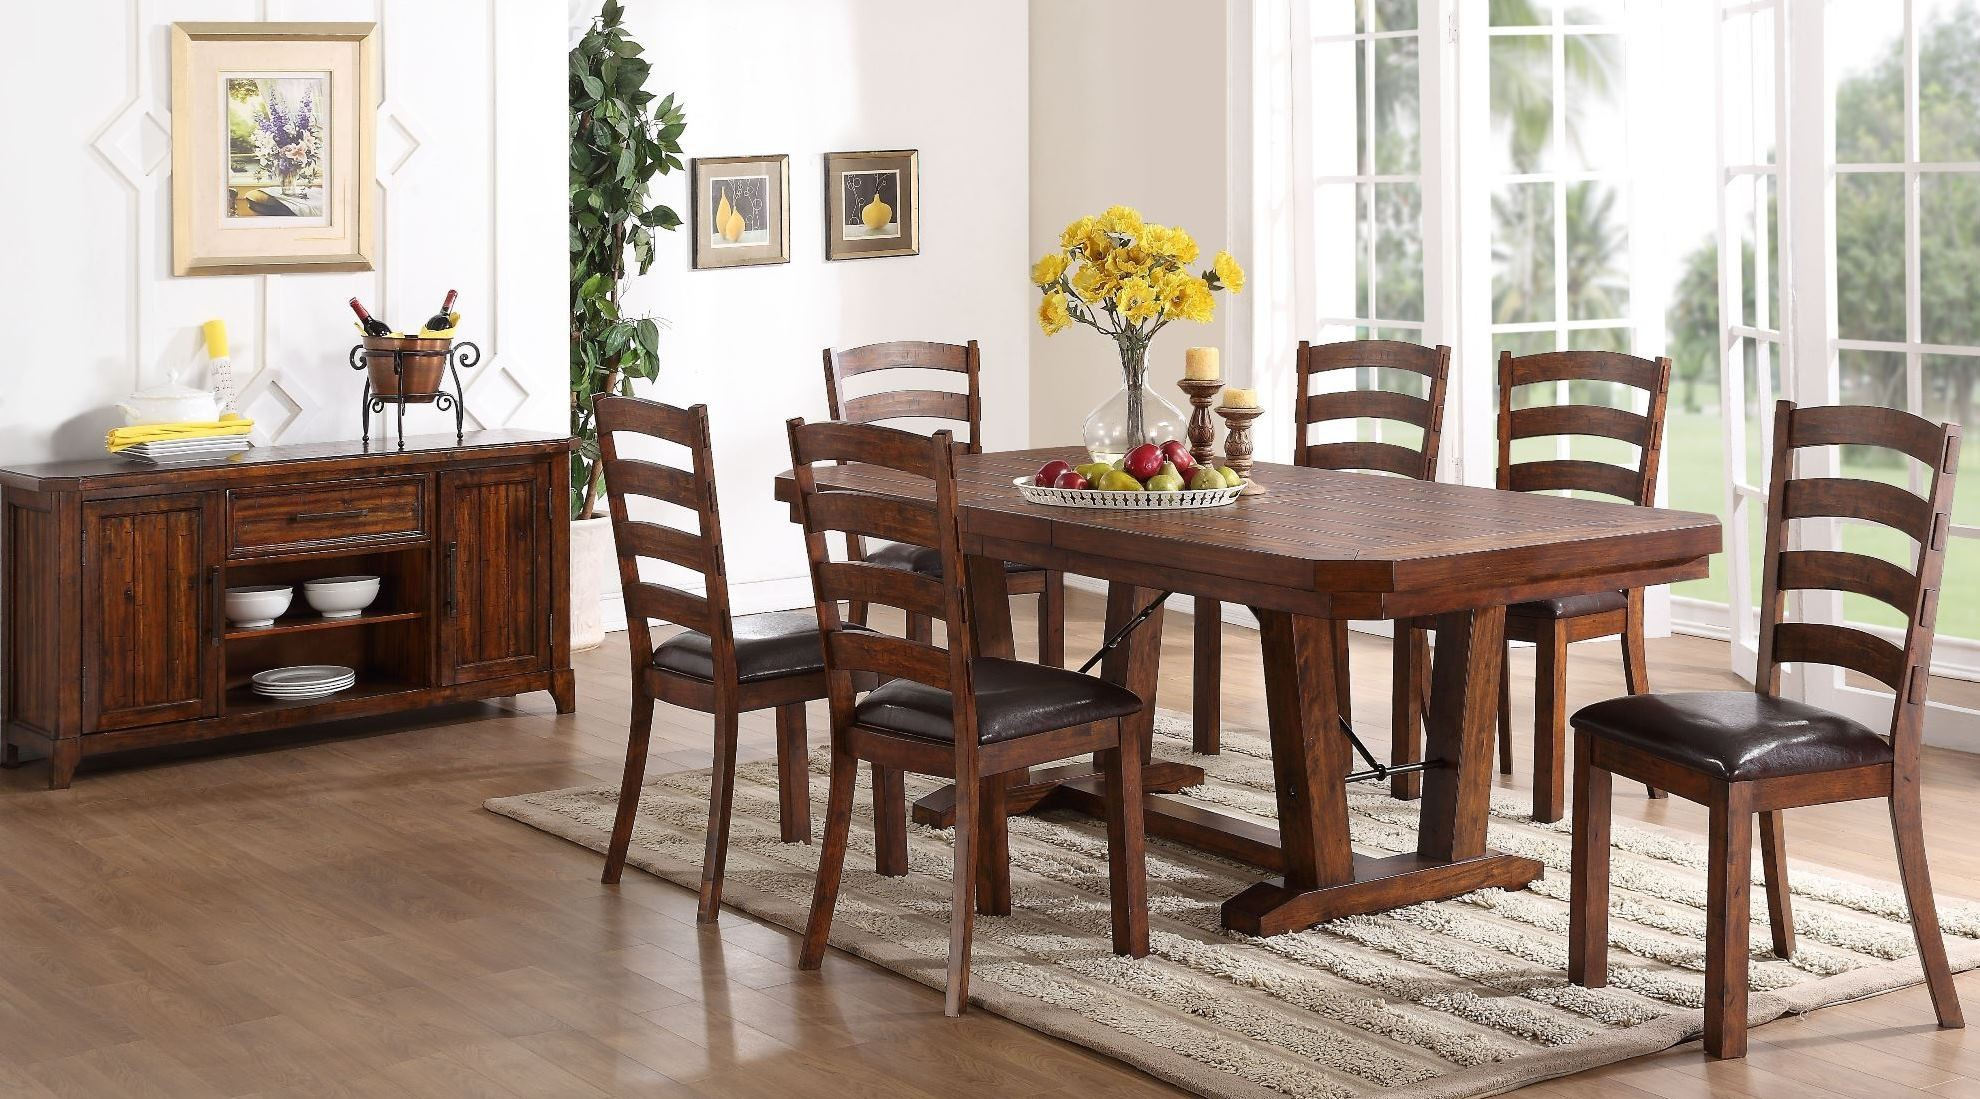 distressed dining room furniture | Lanesboro Distressed Walnut Dining Room Set from New ...